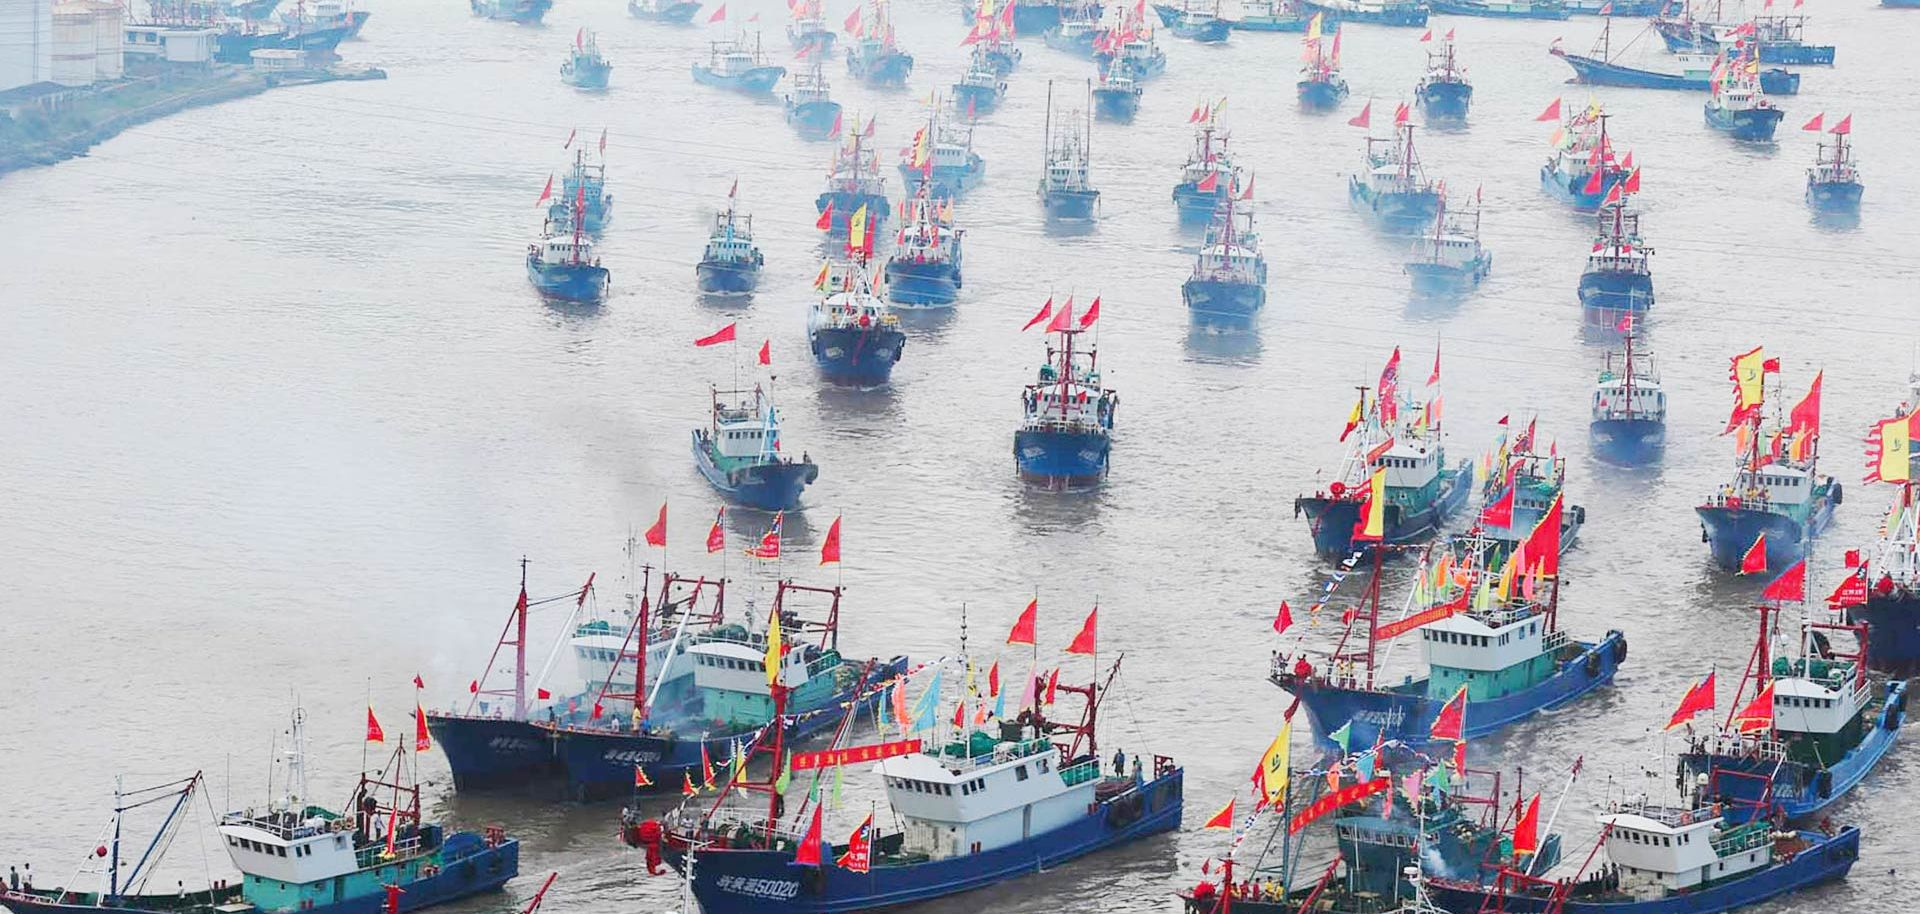 China's fishing fleet has expanded to match its growing appetite for seafood to feed its population and its export markets. Despite the region's focus on minerals and oil, fish are a more important factor in the disputes in the South China Sea.